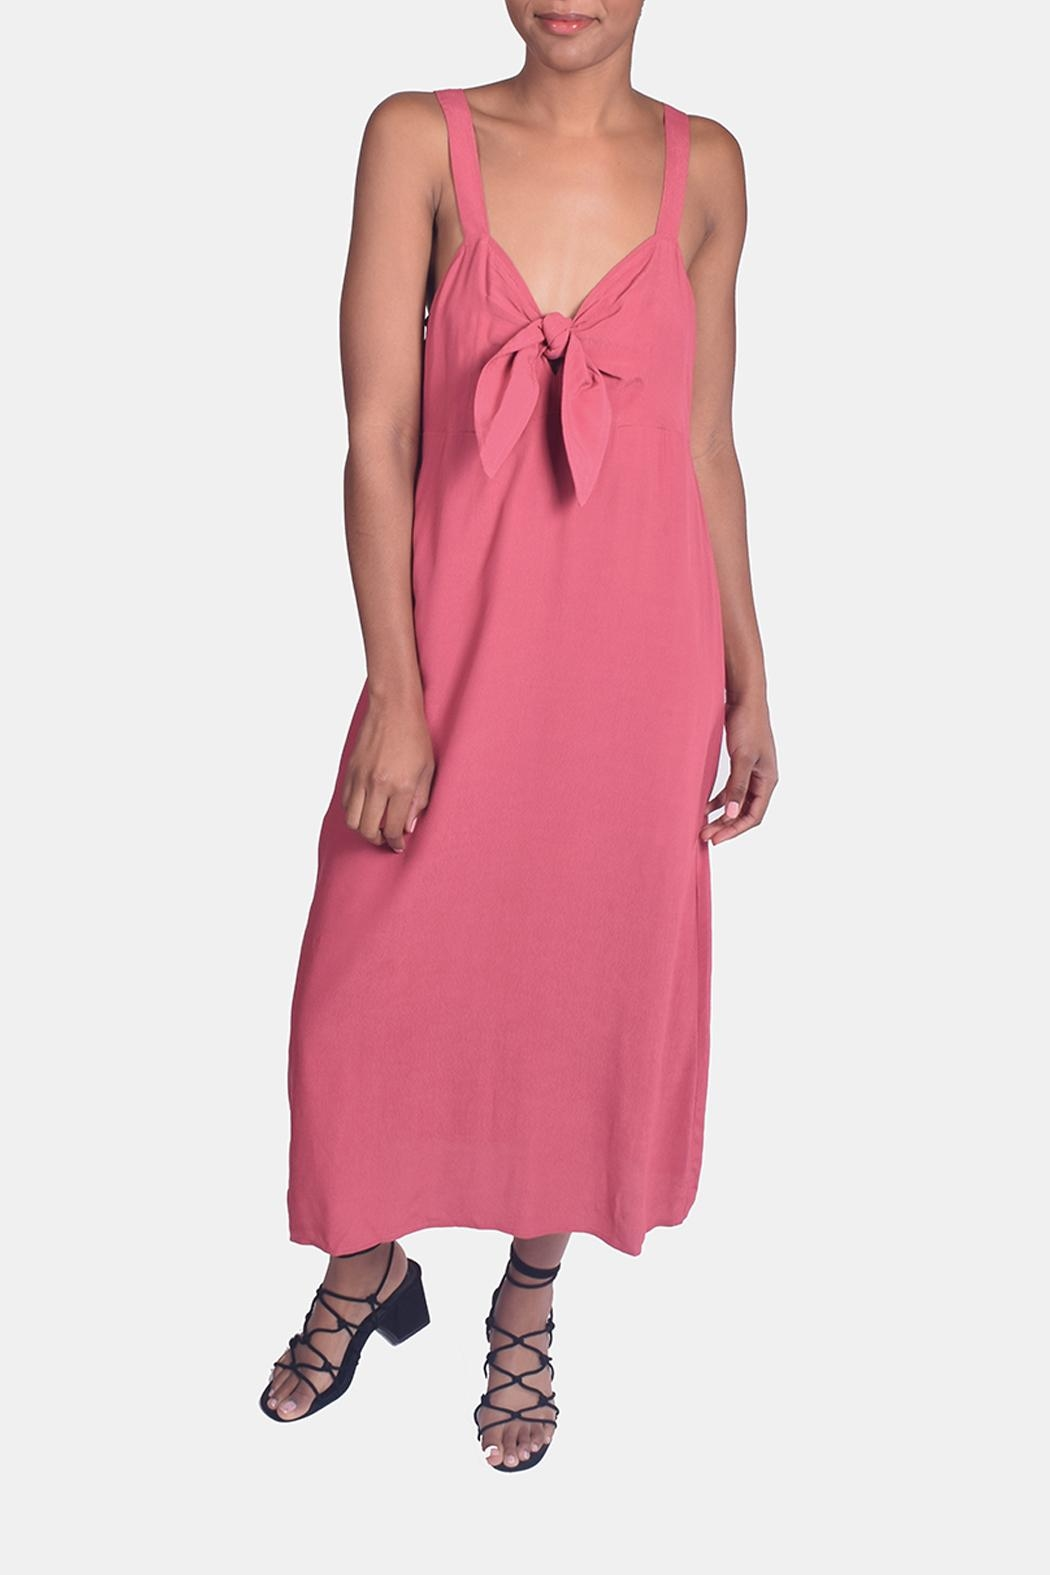 Lumiere Sweetheart Tie Front Dress - Main Image